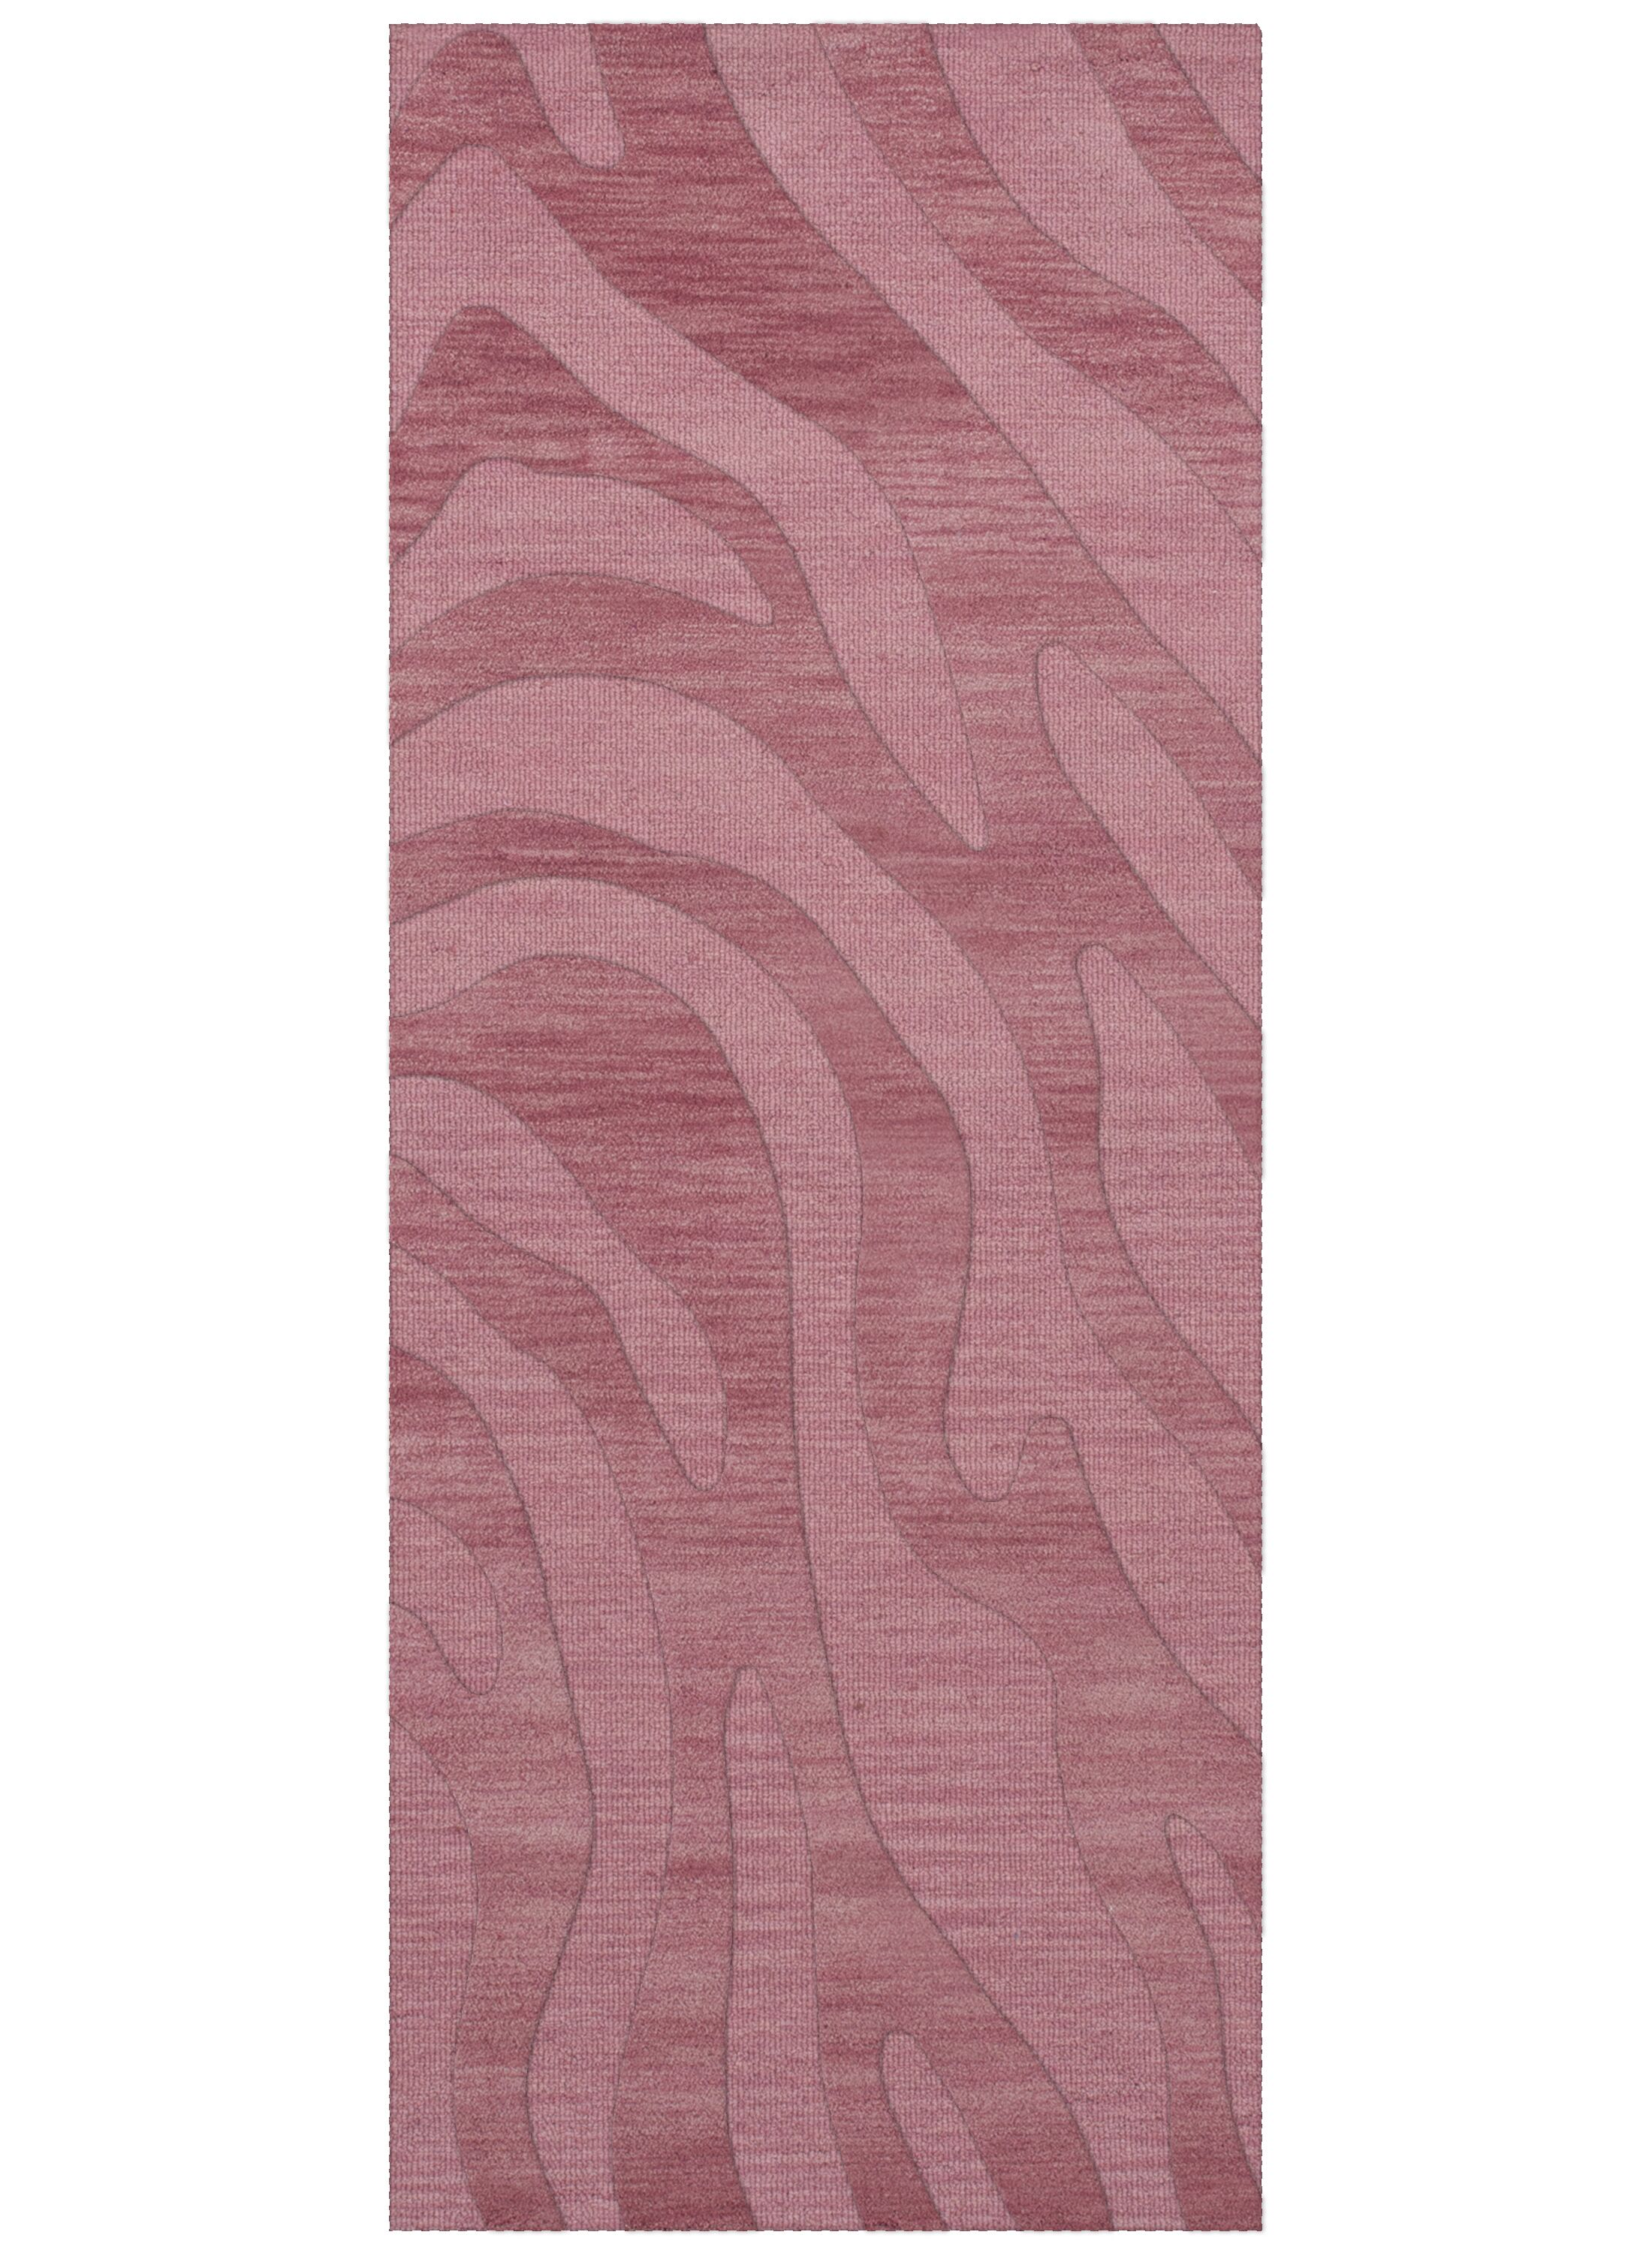 Dover Tufted Wool Bubblishous Area Rug Rug Size: Runner 2'6